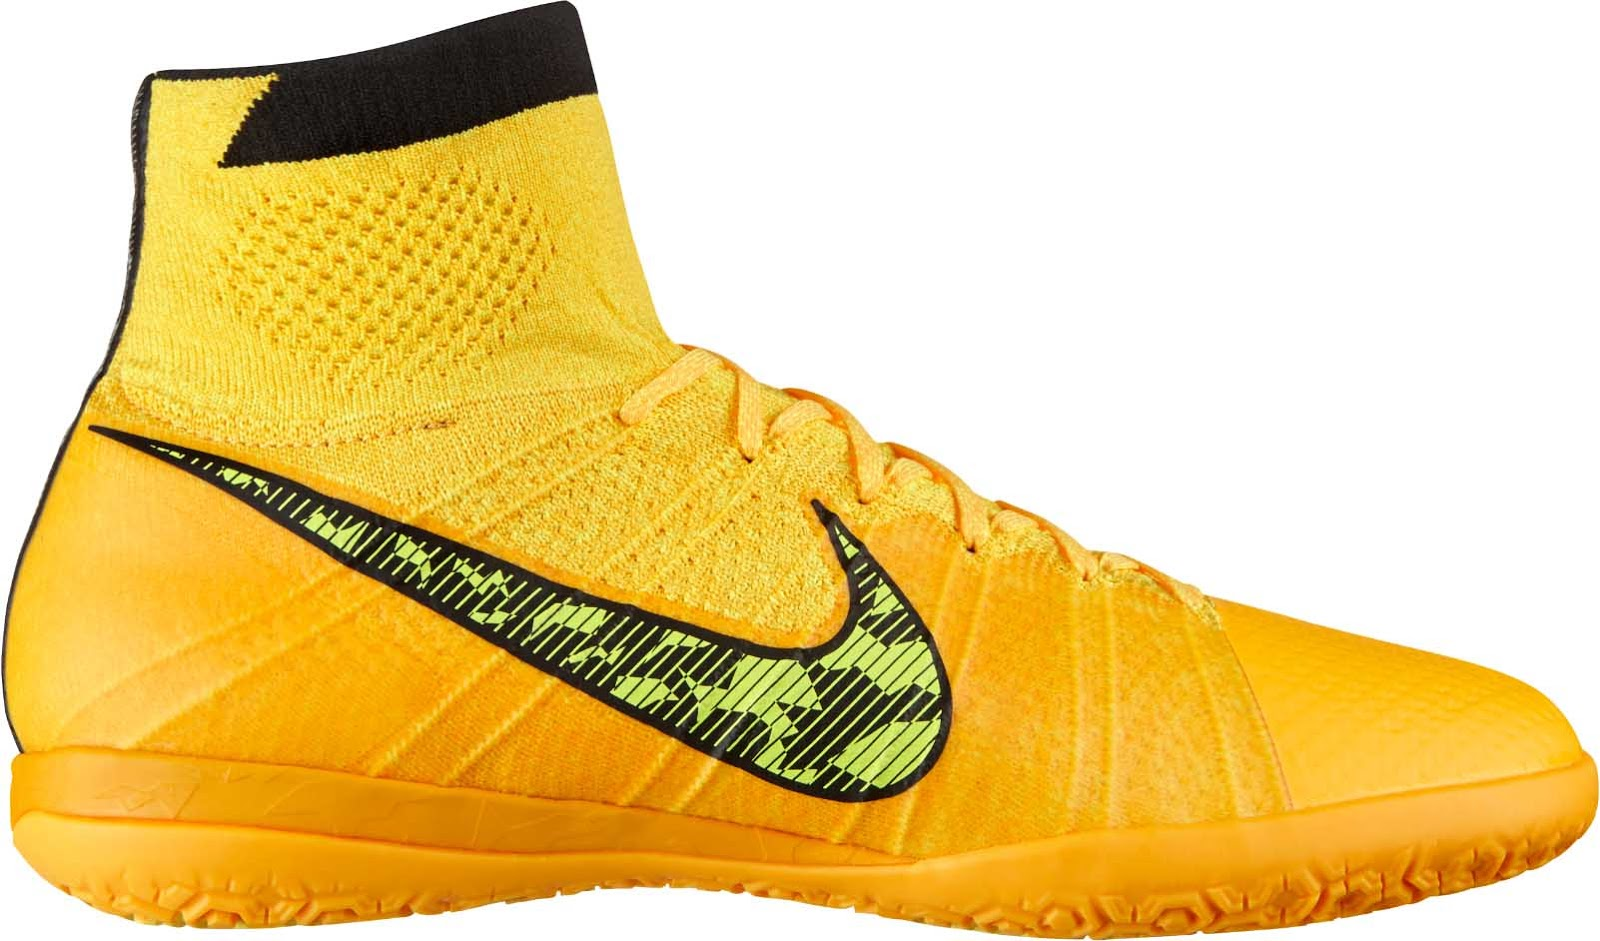 Weck jar  Nike Just Do It Pack  Football Boots  cleatsxp